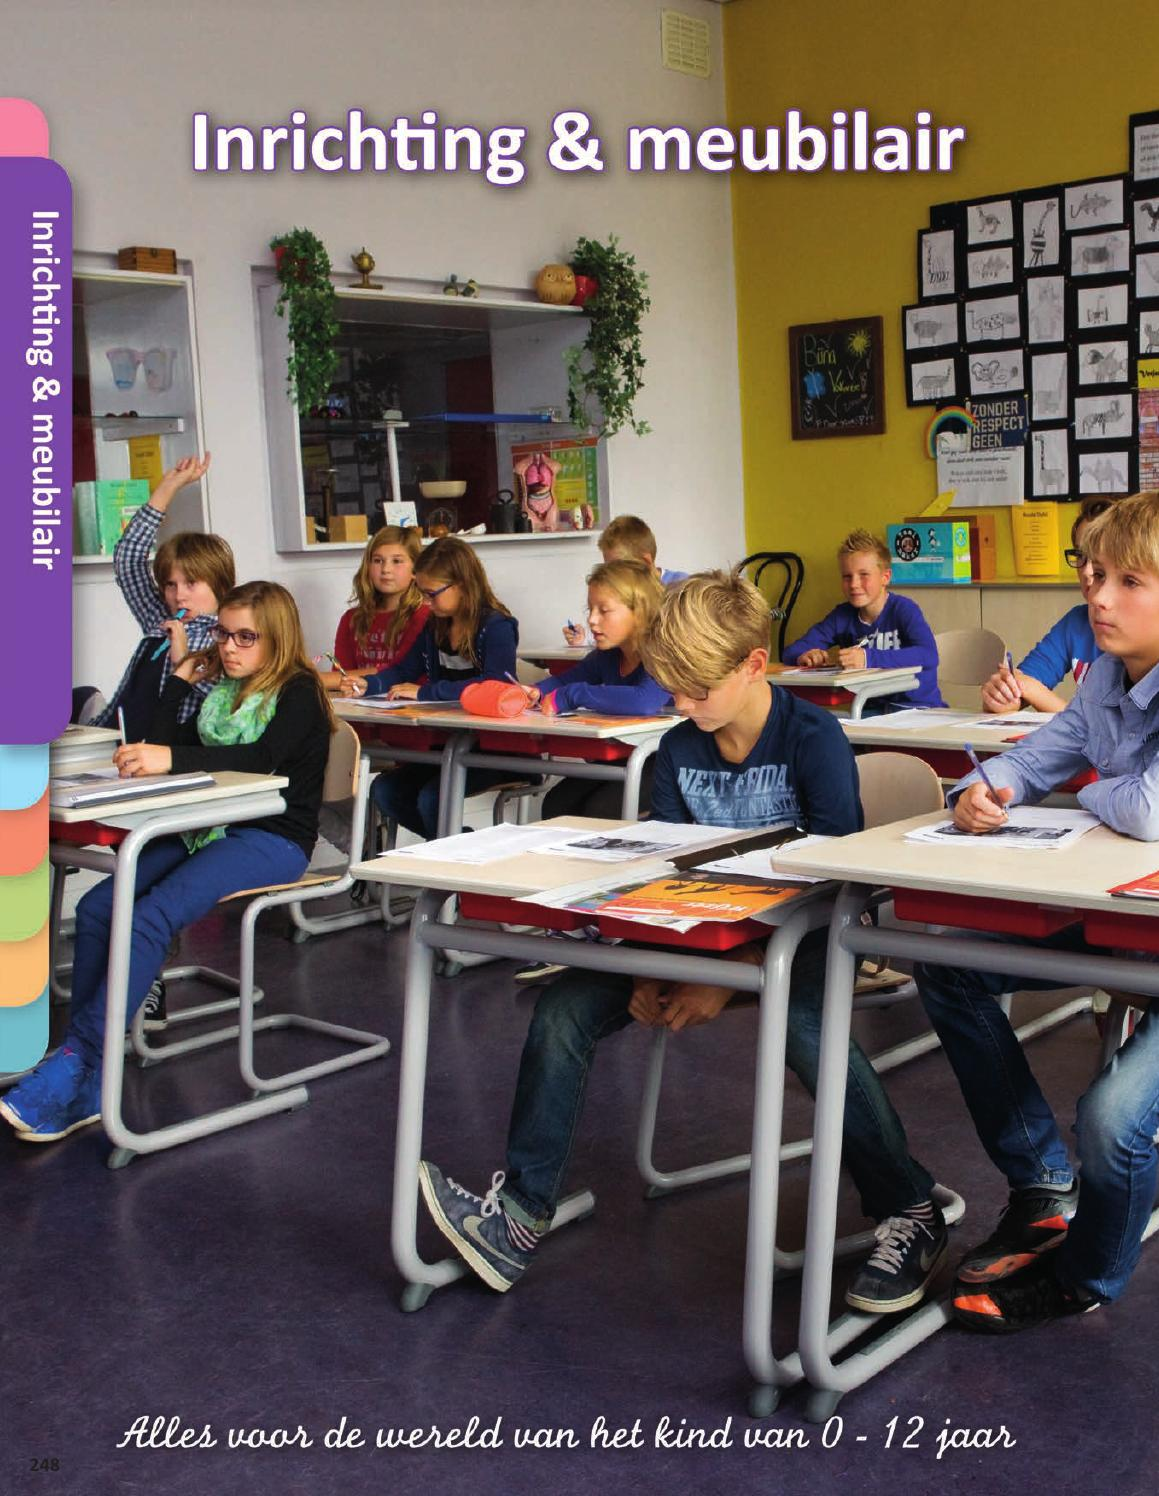 De rolf groep catalogus kinderopvang   inrichting & meubilair by ...